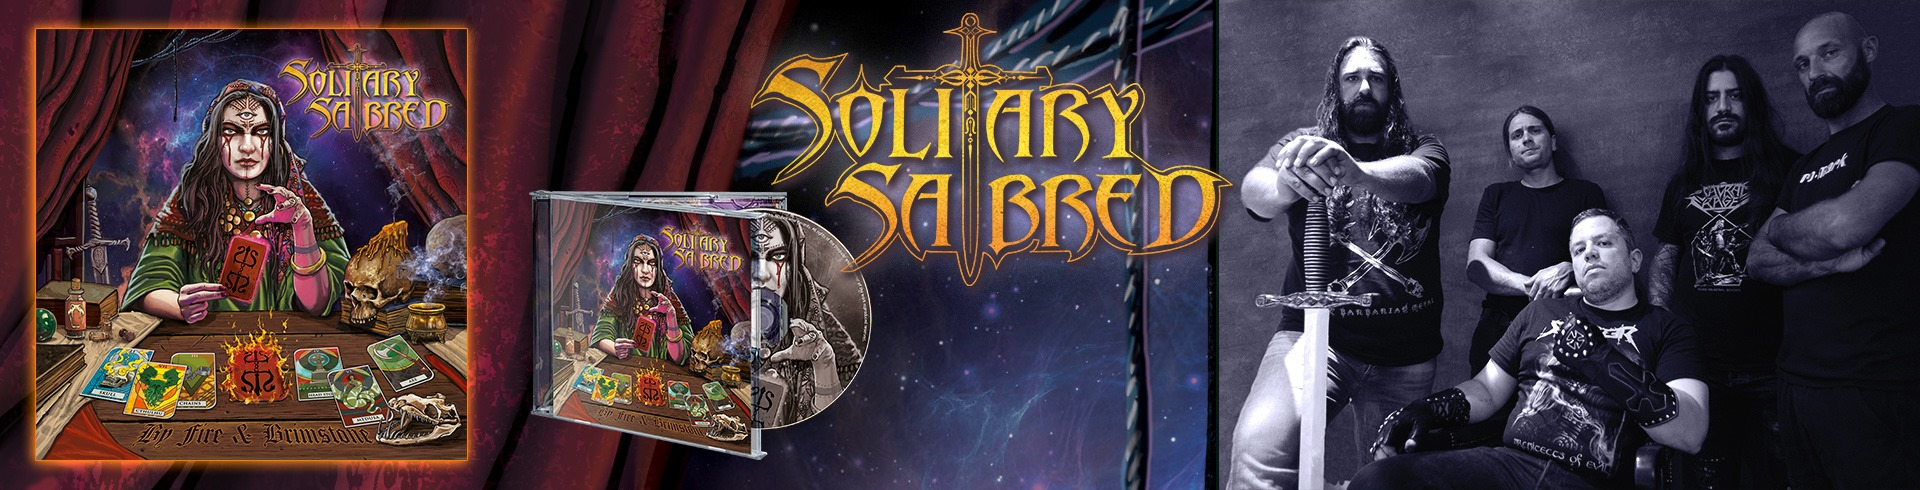 SOLITARY SABRED By Fire & Brimstone (2020) Heavy/Power CHYPRE 85063110